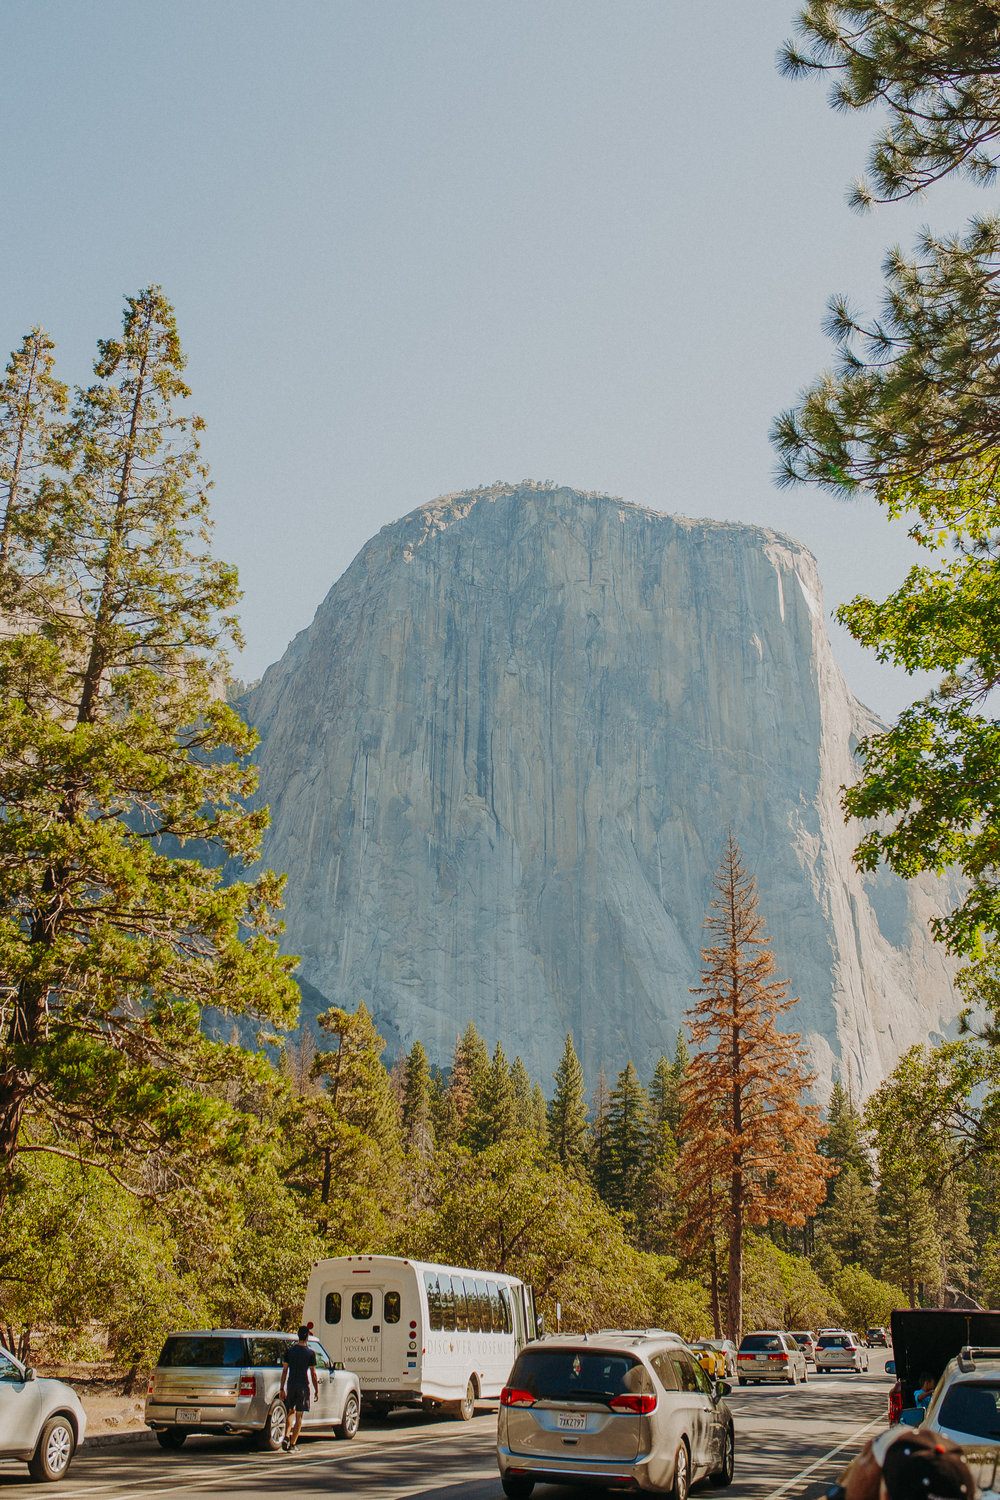 Visit-Yosemite-National-Park-Pictures-California-2.jpg